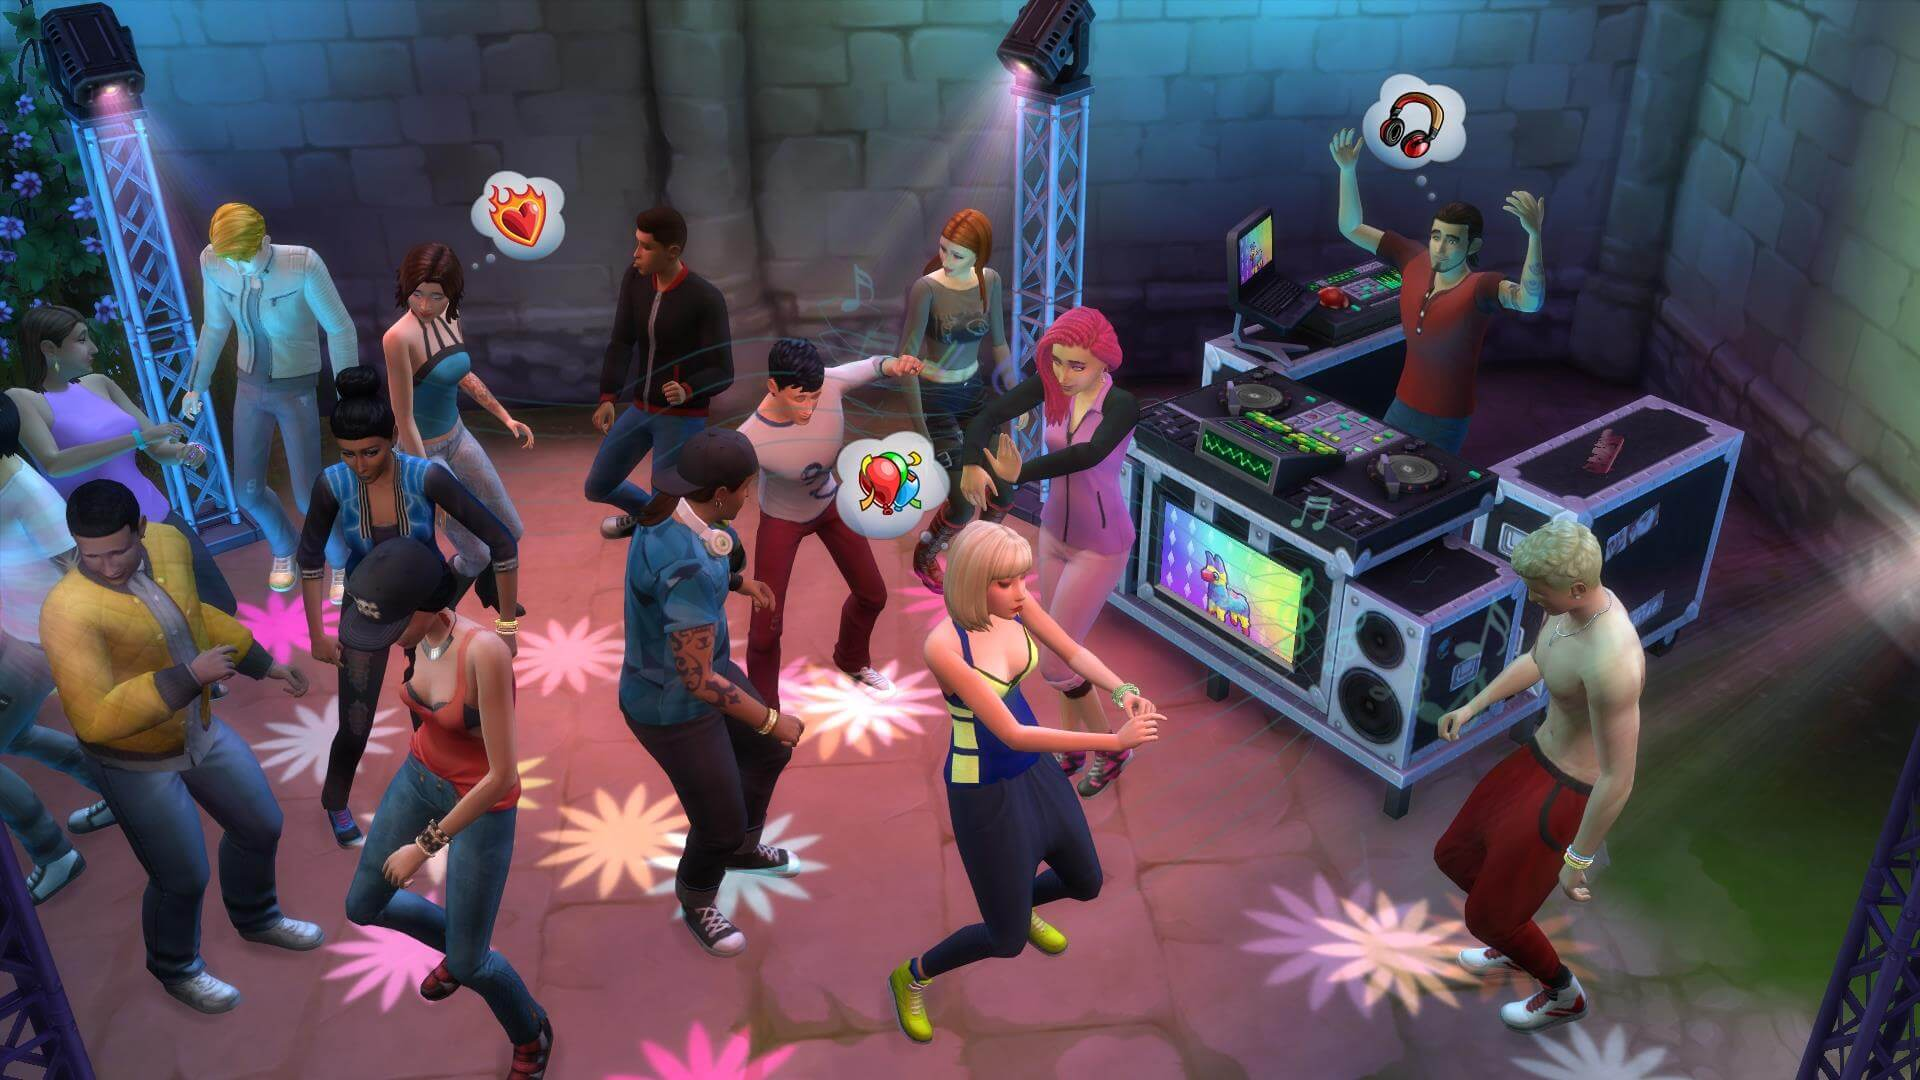 The Sims 4: Get Together Masthead